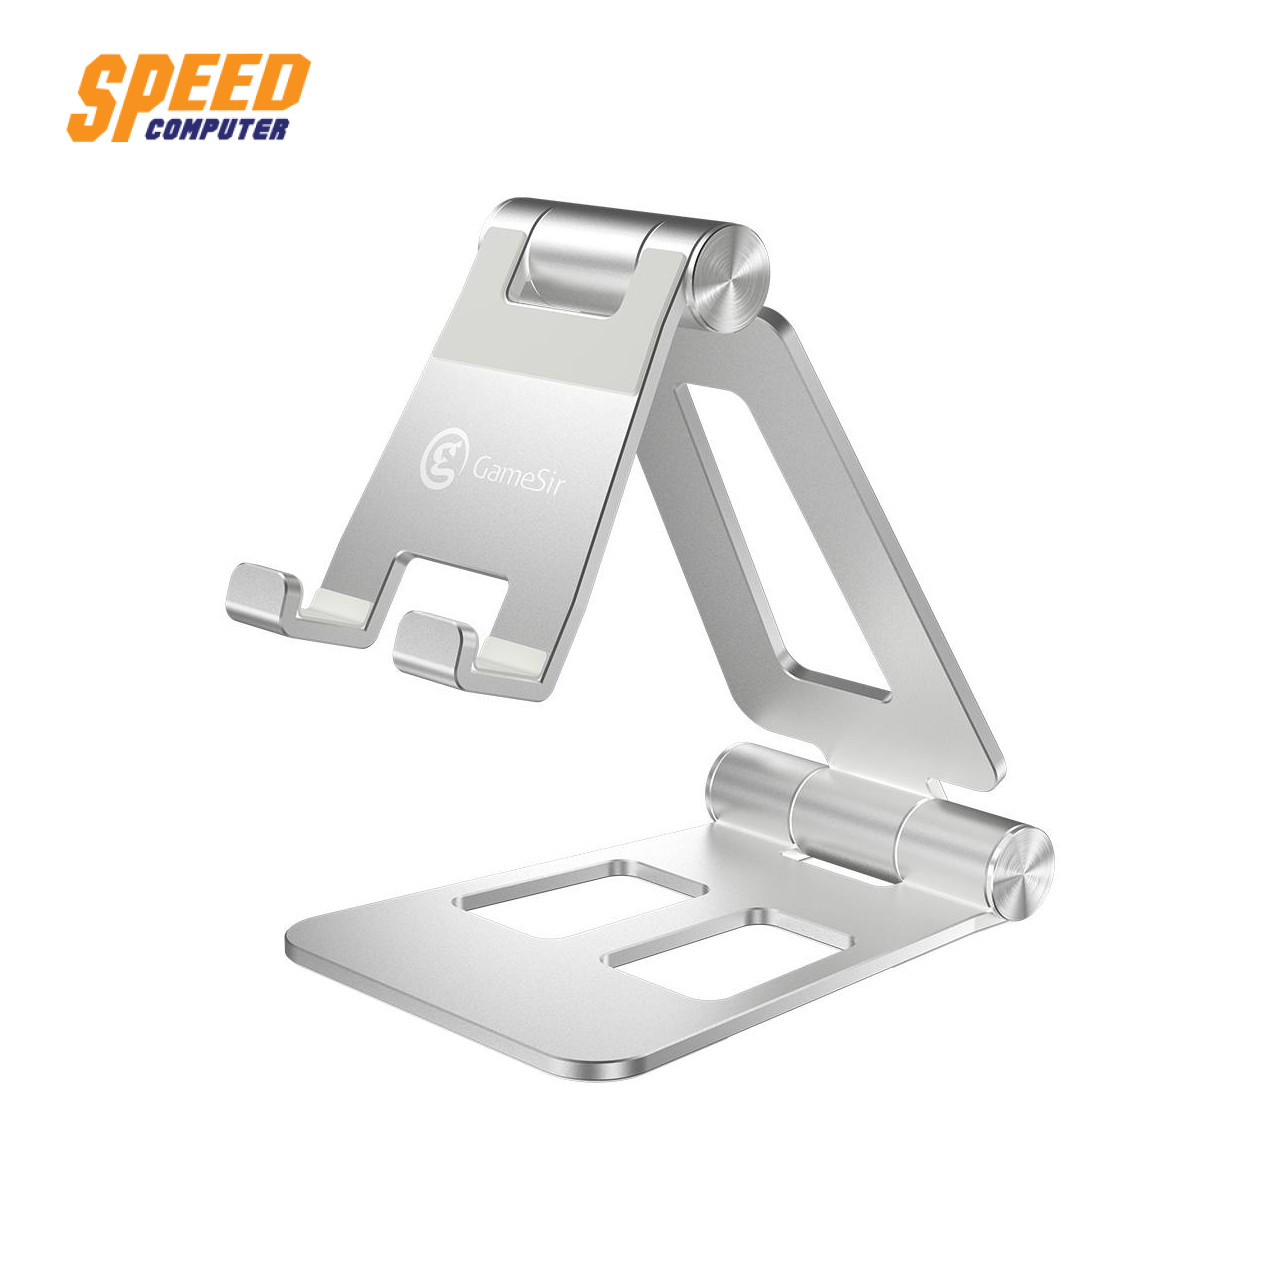 GAMESIR-BRACKET PLAYSTAND